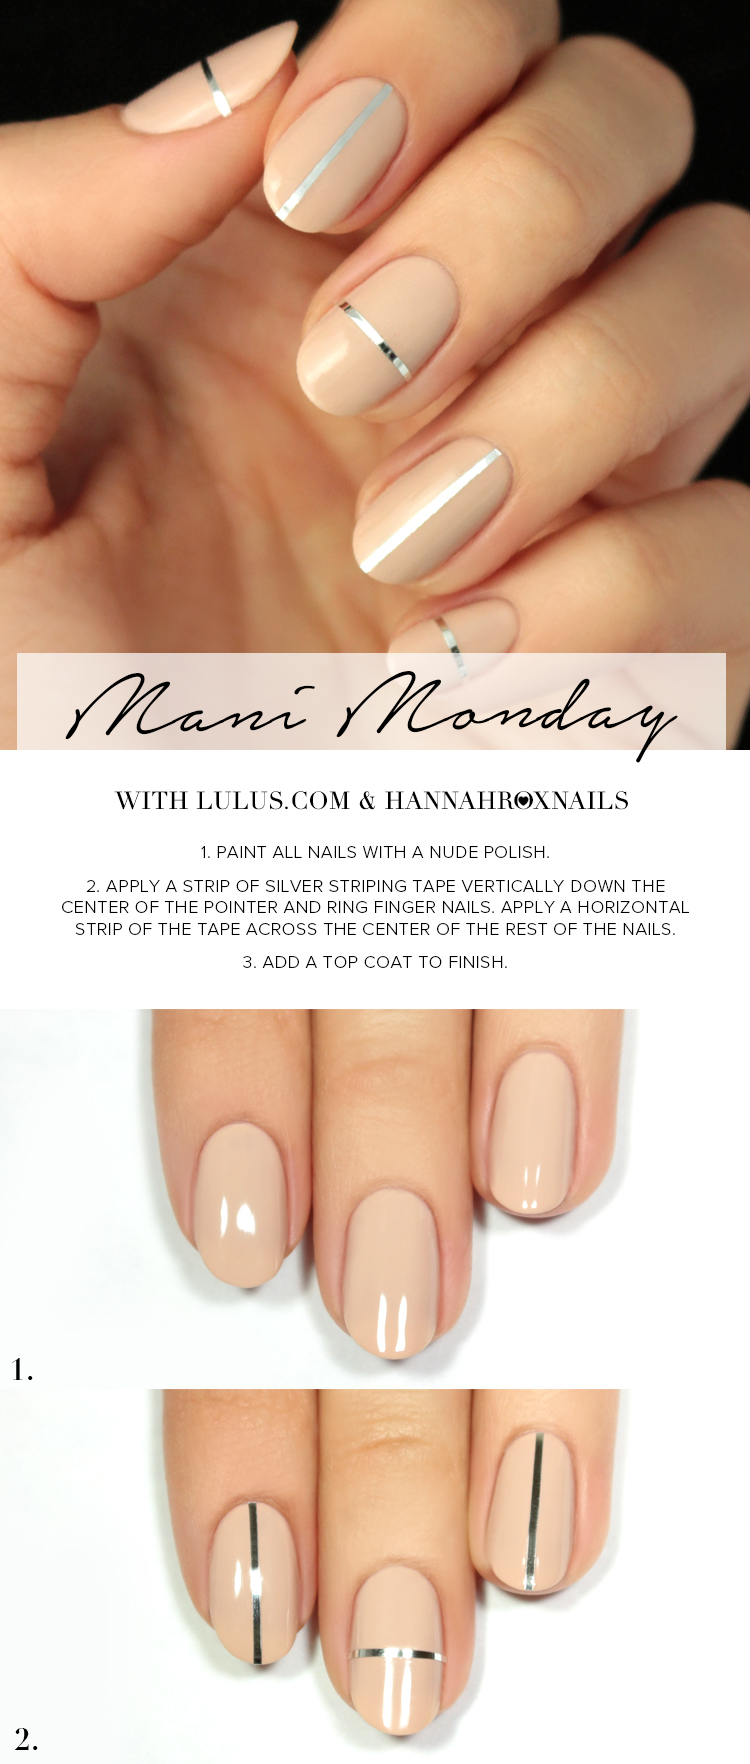 nude and silver striped nail